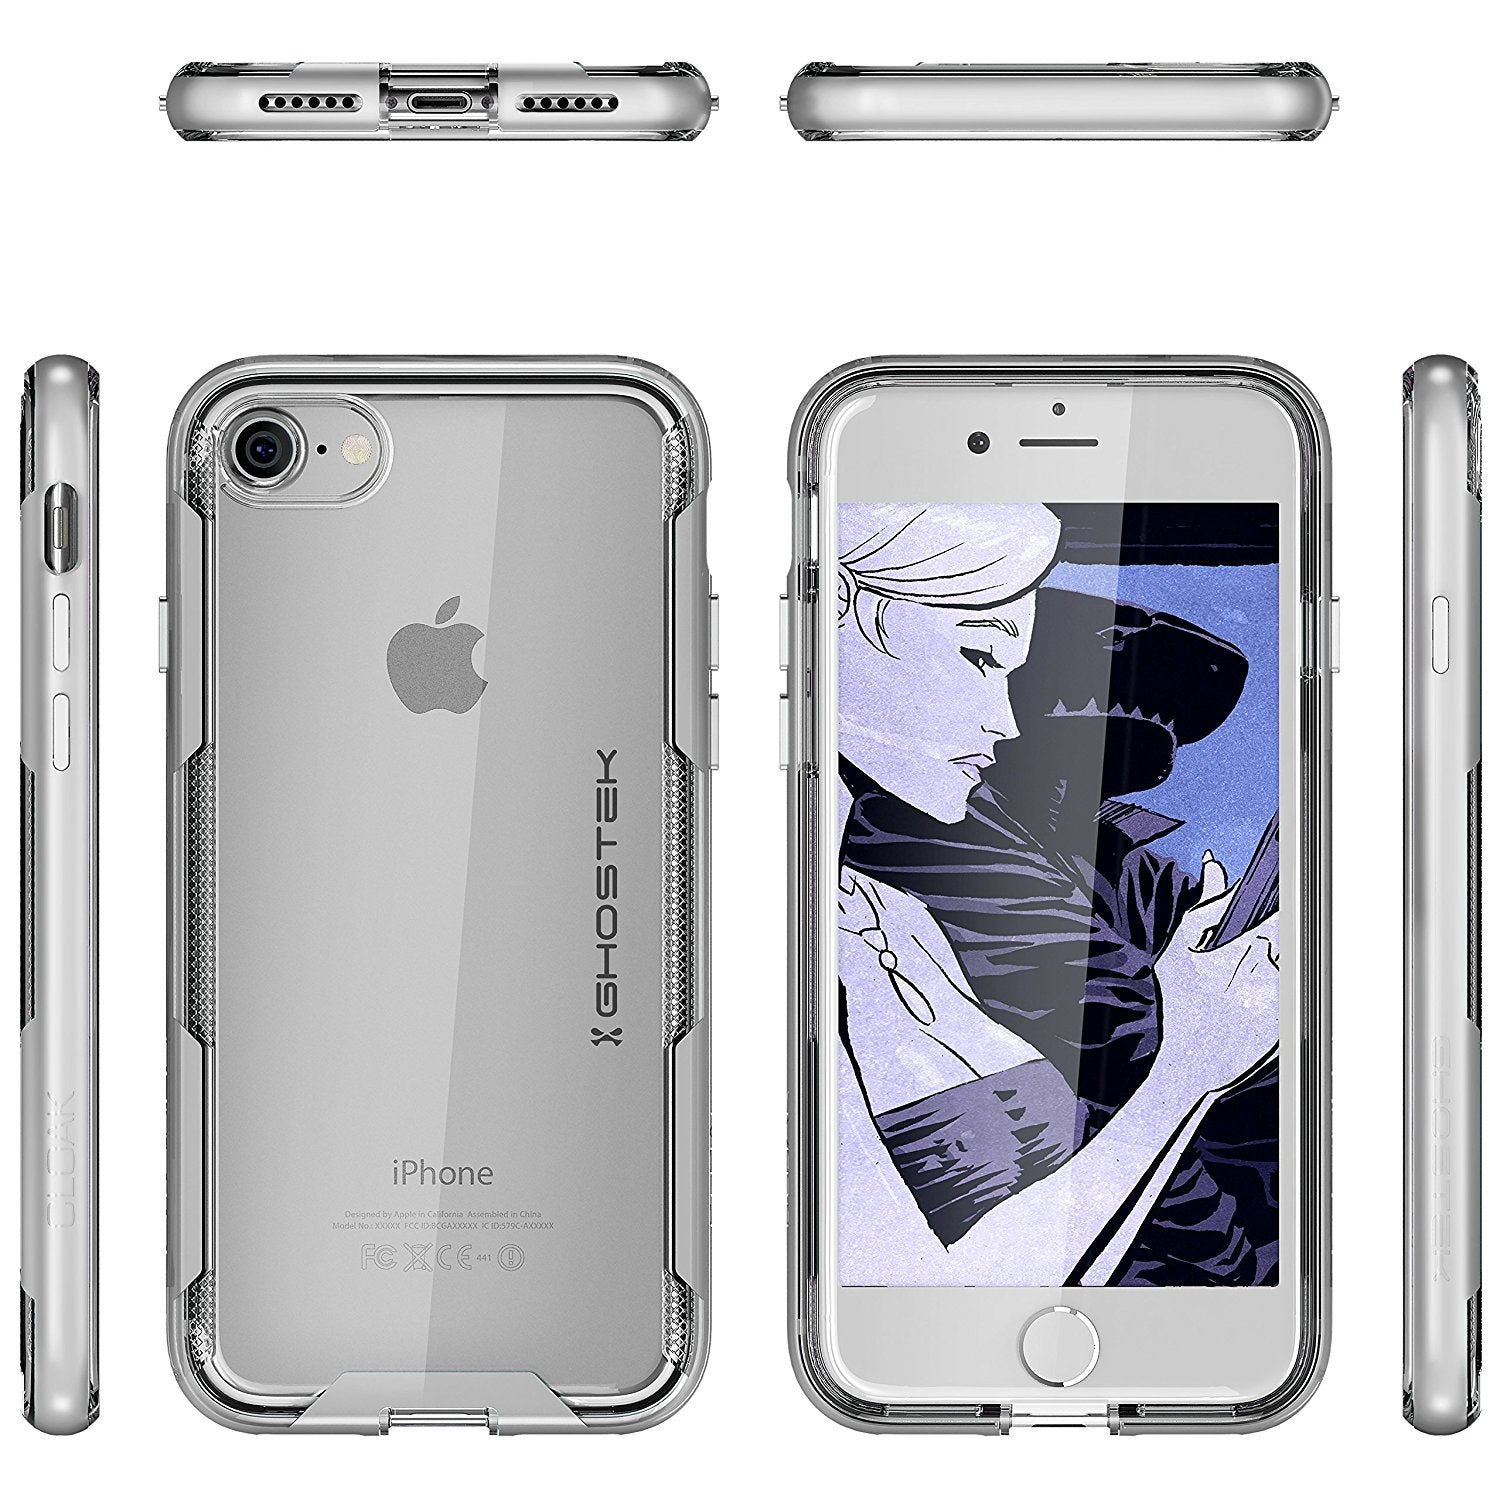 iPhone 7 Case, Ghostek Cloak 3 Series Case for iPhone 7 Case Clear Protective Case [SILVER]